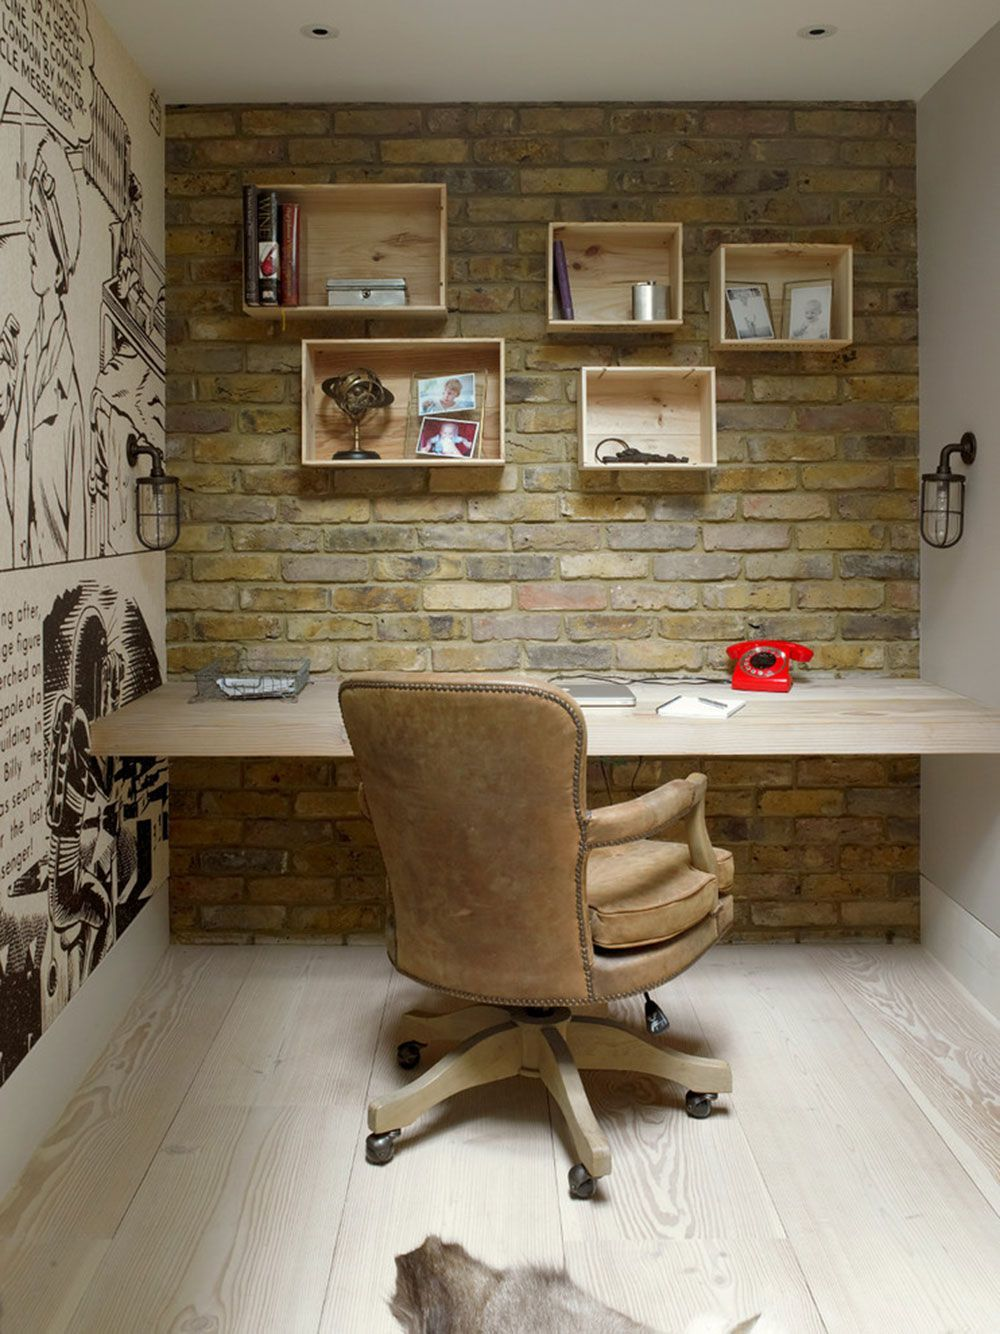 diy wall mounted desk design ideas | wall mounted desk, diy wall and